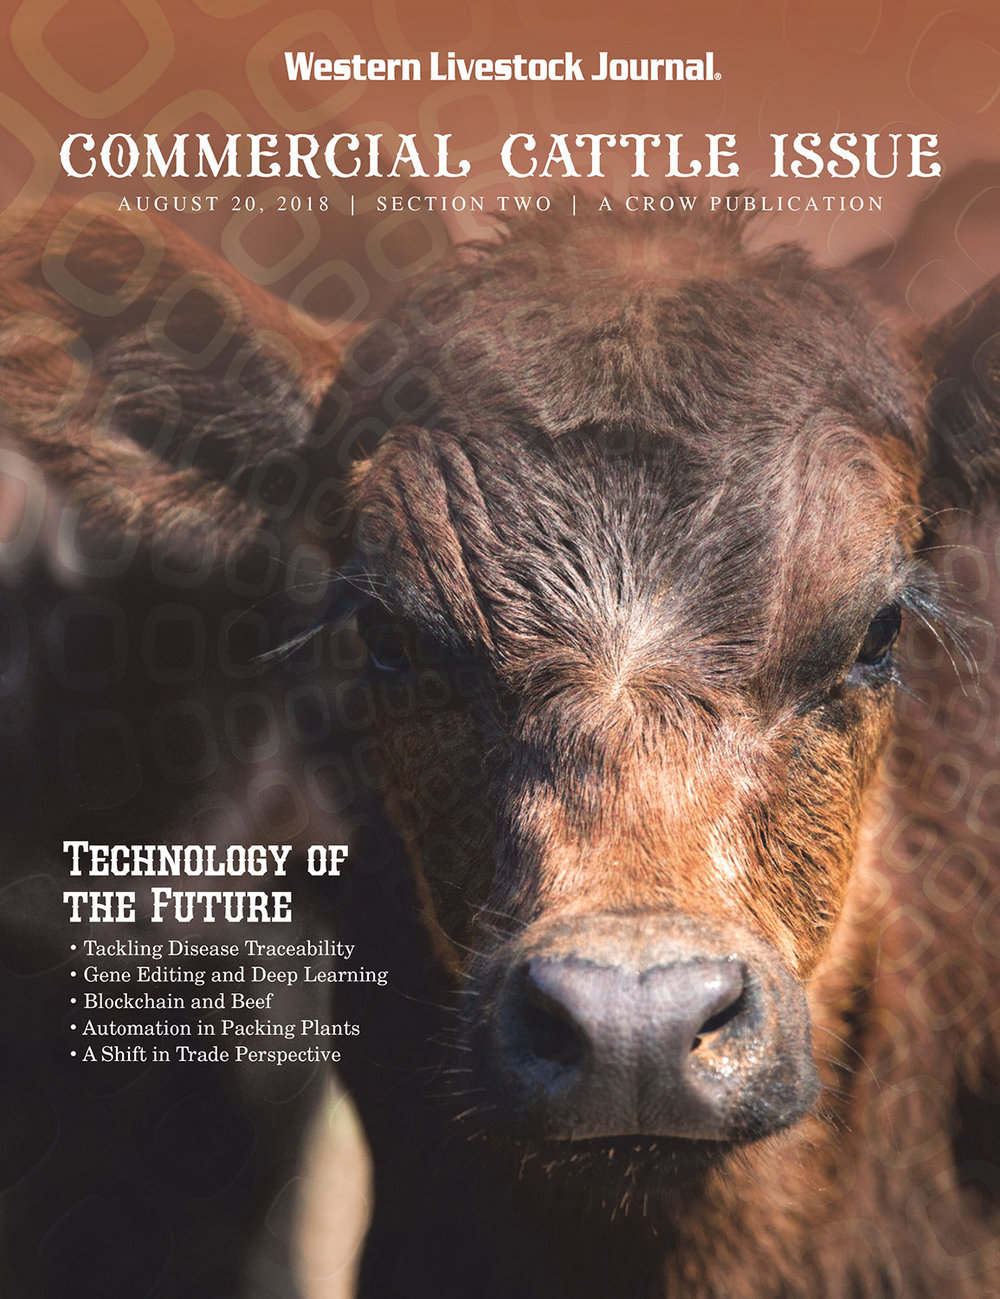 Published Cattle Stock Images on Cover of Western Livestock Journal